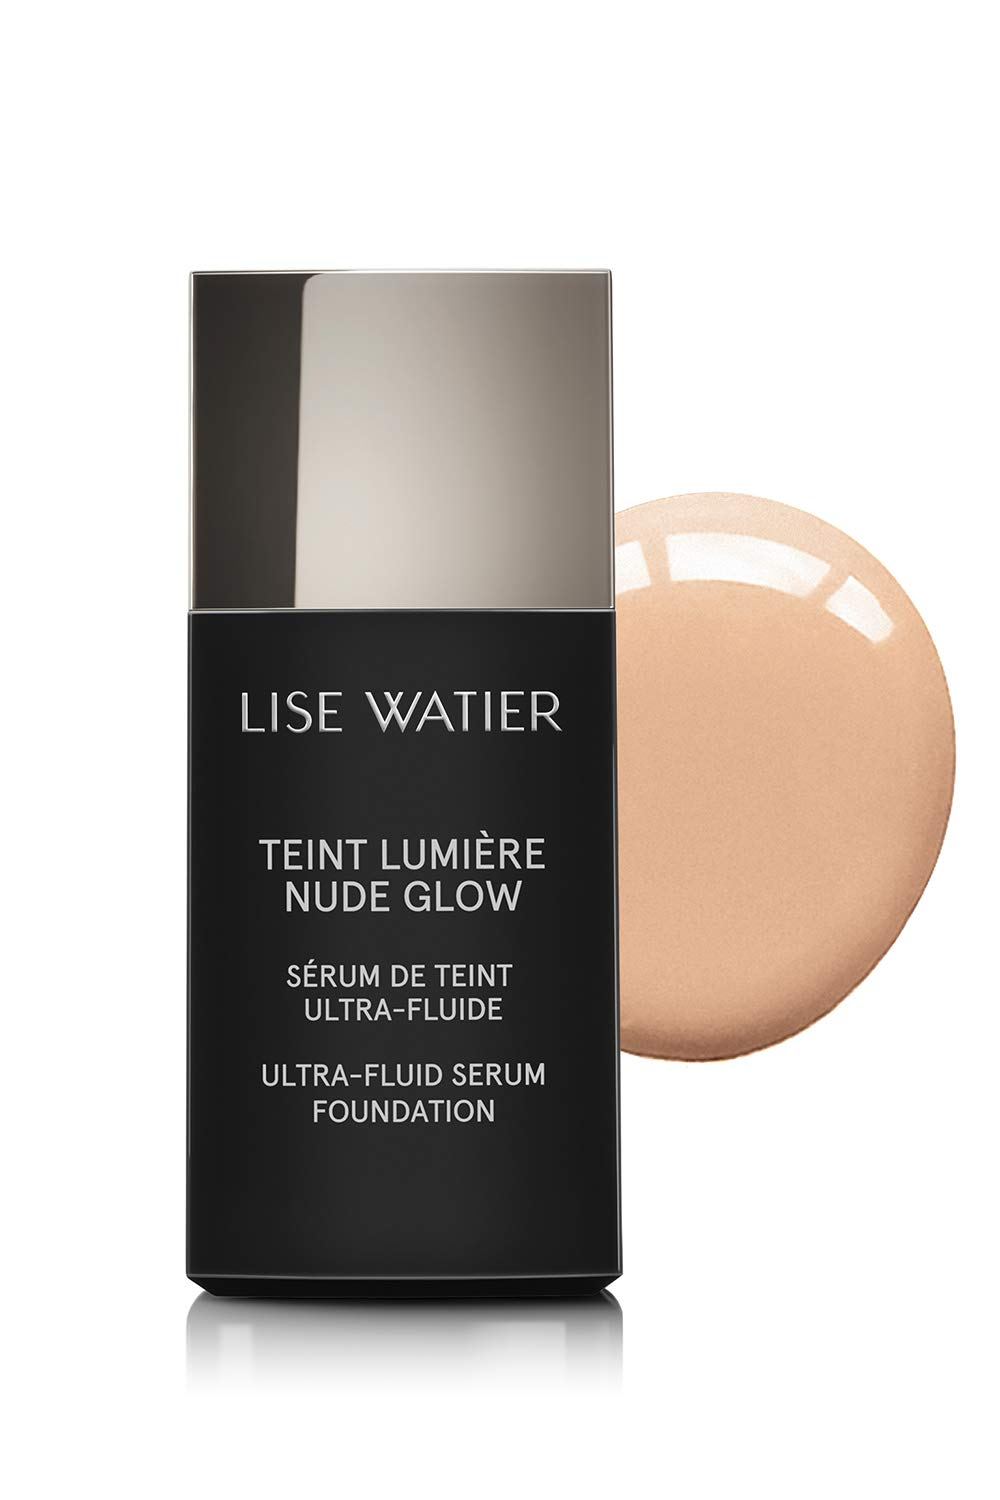 Amazon.com: Lise Watier Teint Lumière Nude Glow Ultra-Fluid Serum Foundation, Beige Nu, 0.94 fl oz: Beauty